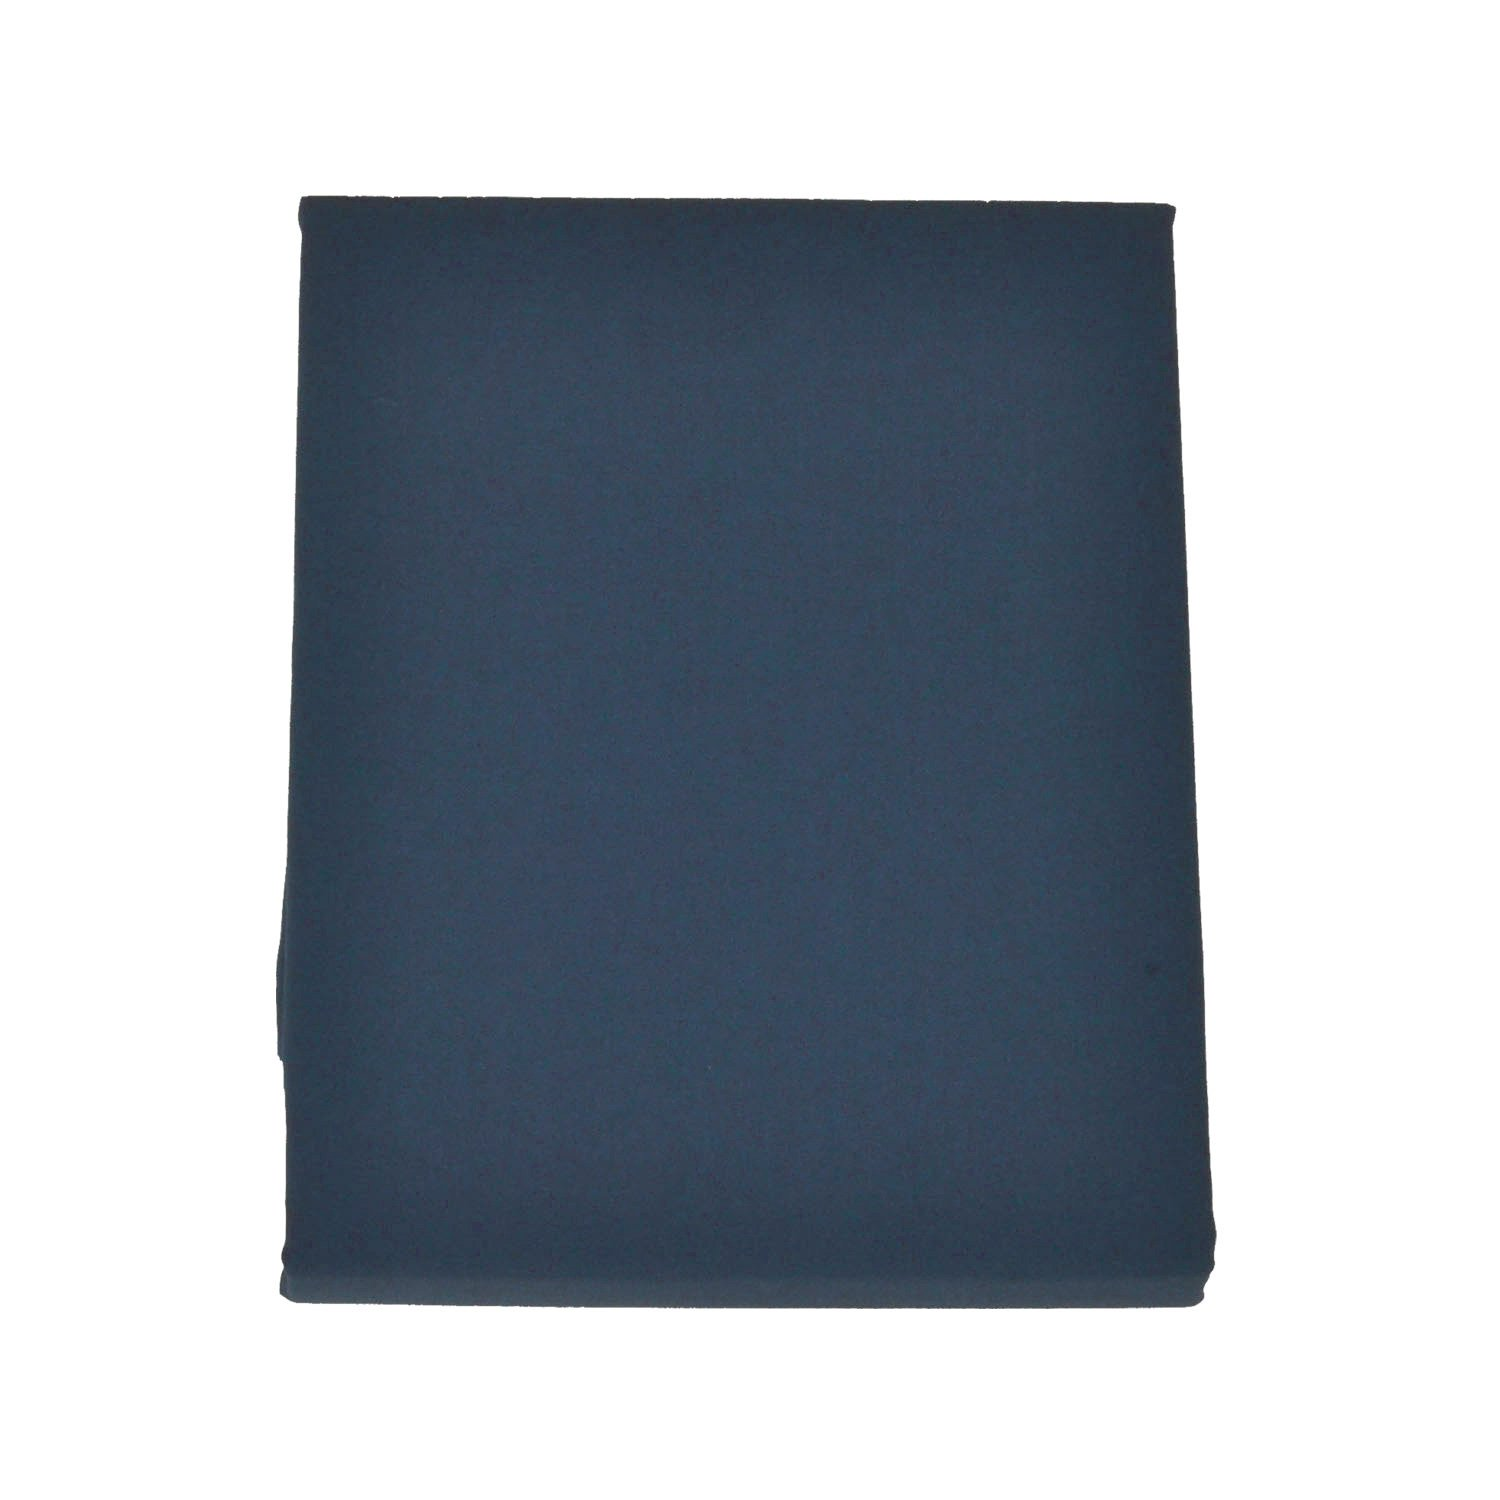 FULI 100% Cotton Cover for Traditional Japanese Floor Futon Mattress, Full XL, Navy. Made in Japan by FULI